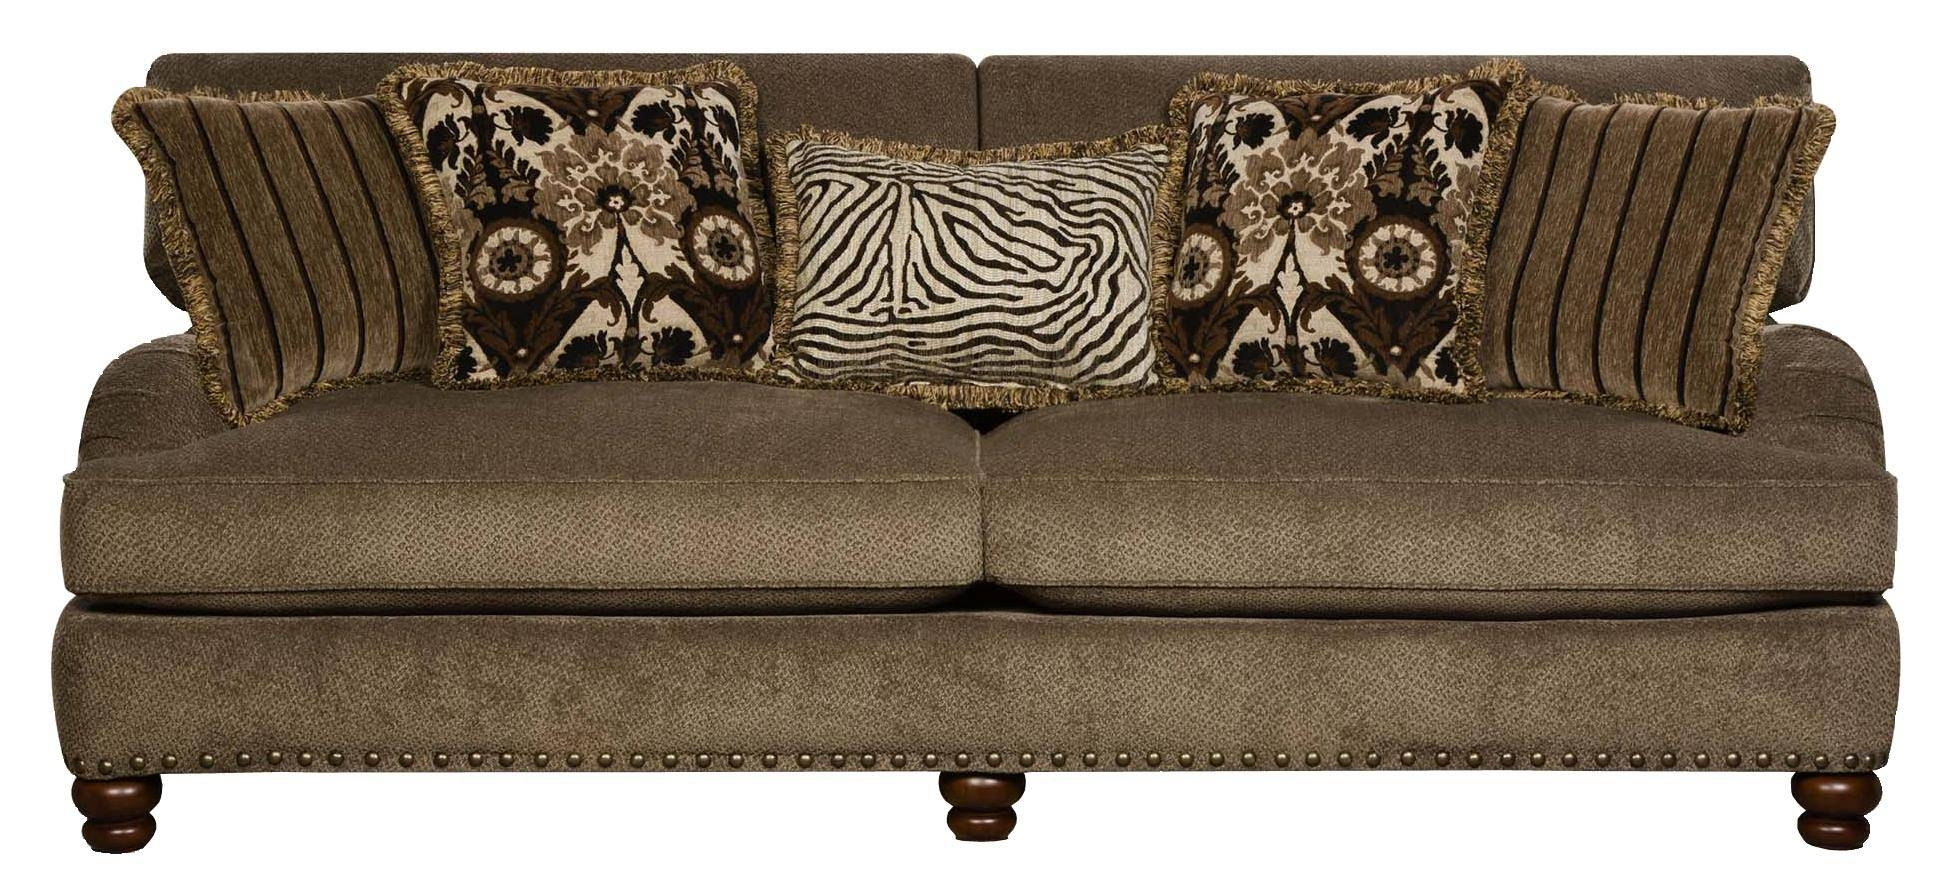 Corinthian Prodigy Prodigy Mink Sofa - Great American Home Store throughout Corinthian Sofas (Image 11 of 15)